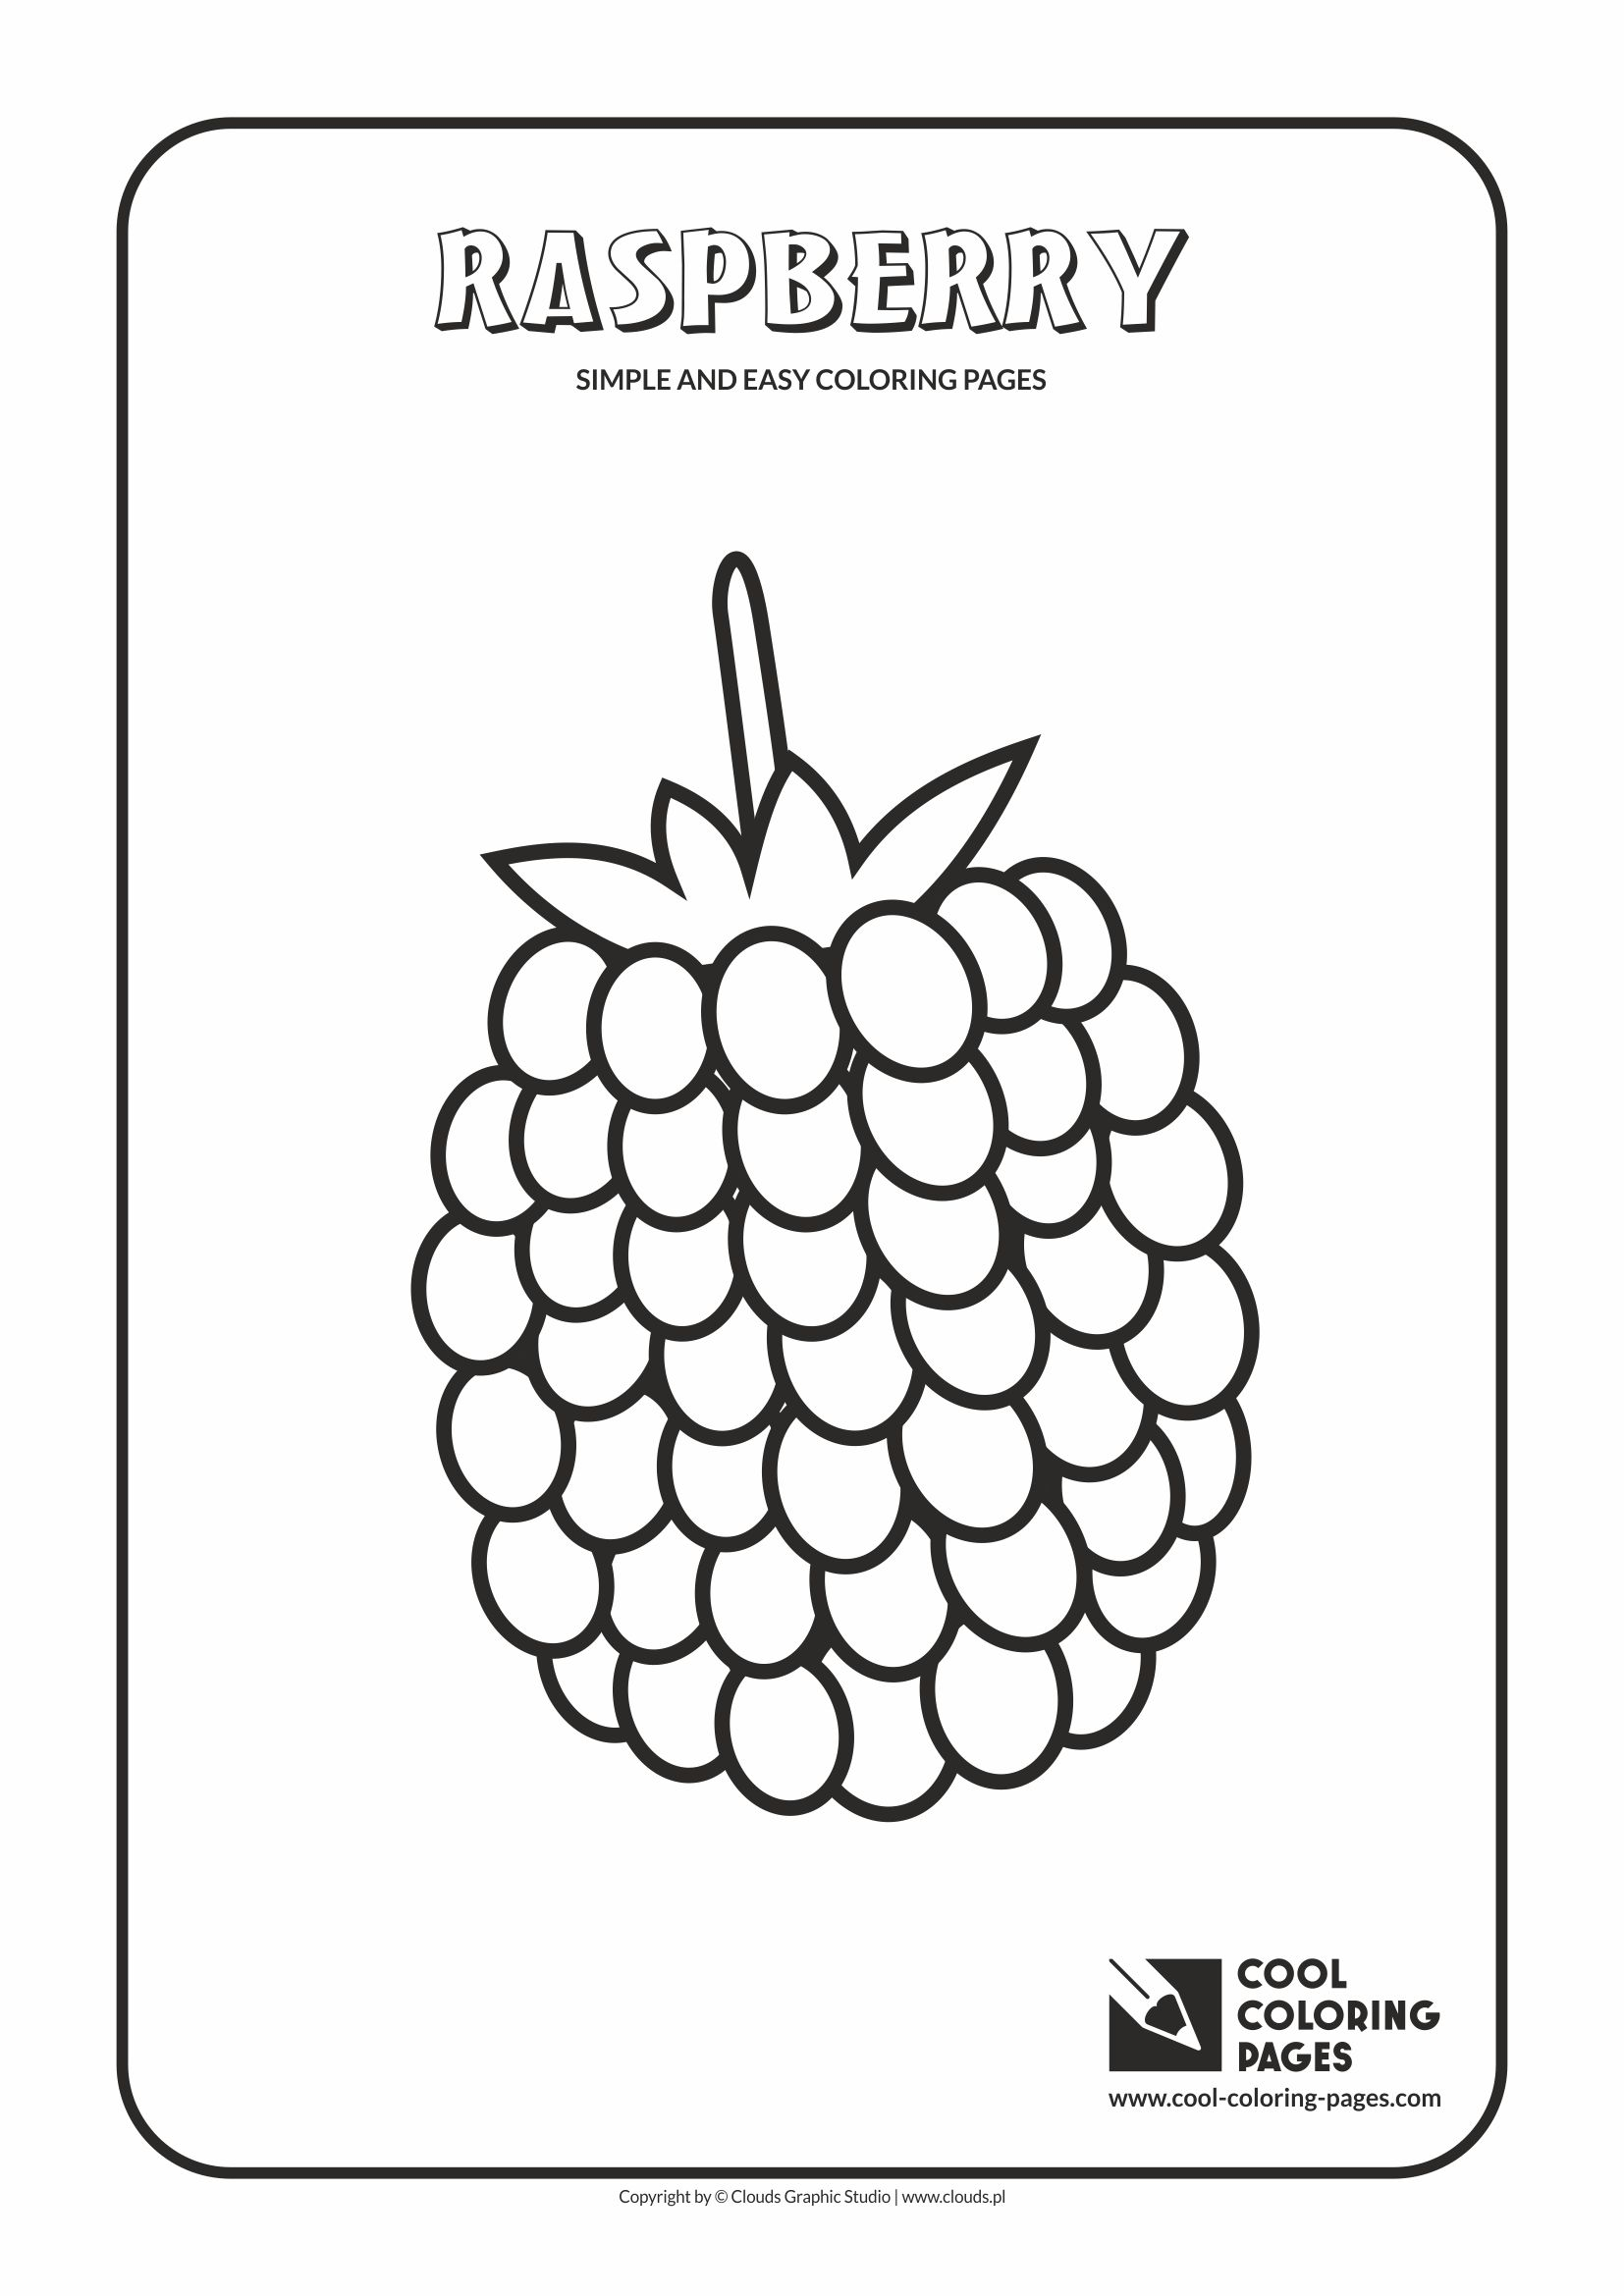 Simple and easy coloring pages  Cool Coloring Pages